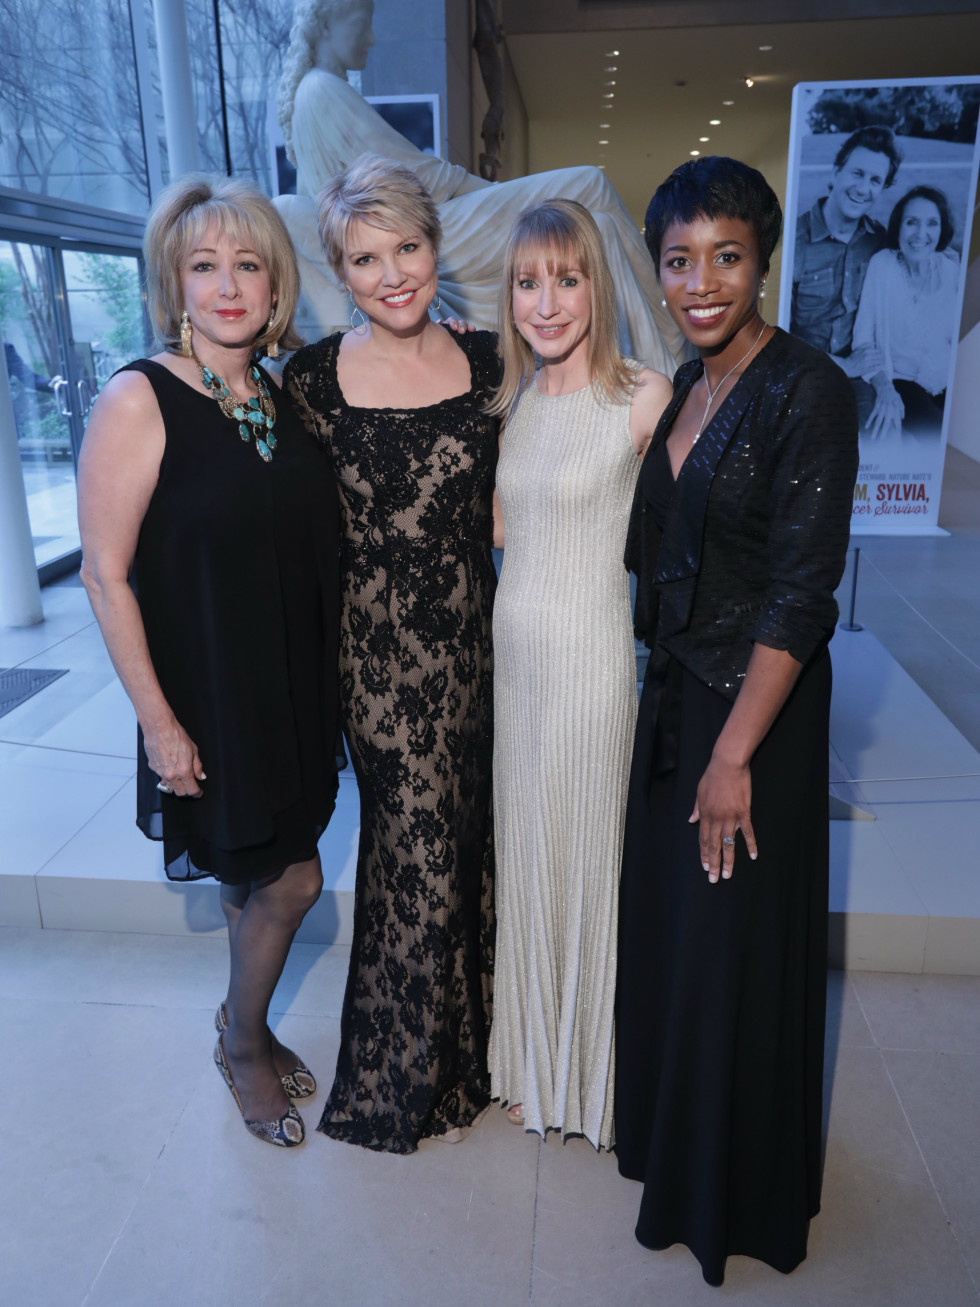 Susan Arledge, Lolette May, Mary Yost, Claudia Coleman